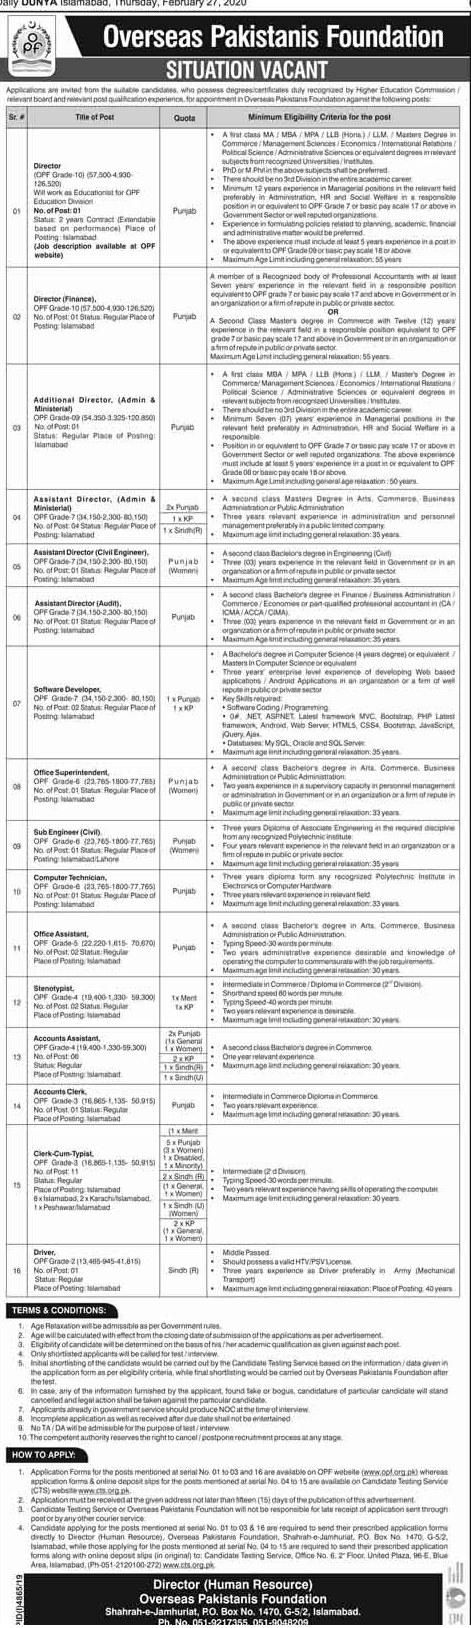 Vacancies in Overseas Pakistanis Foundation